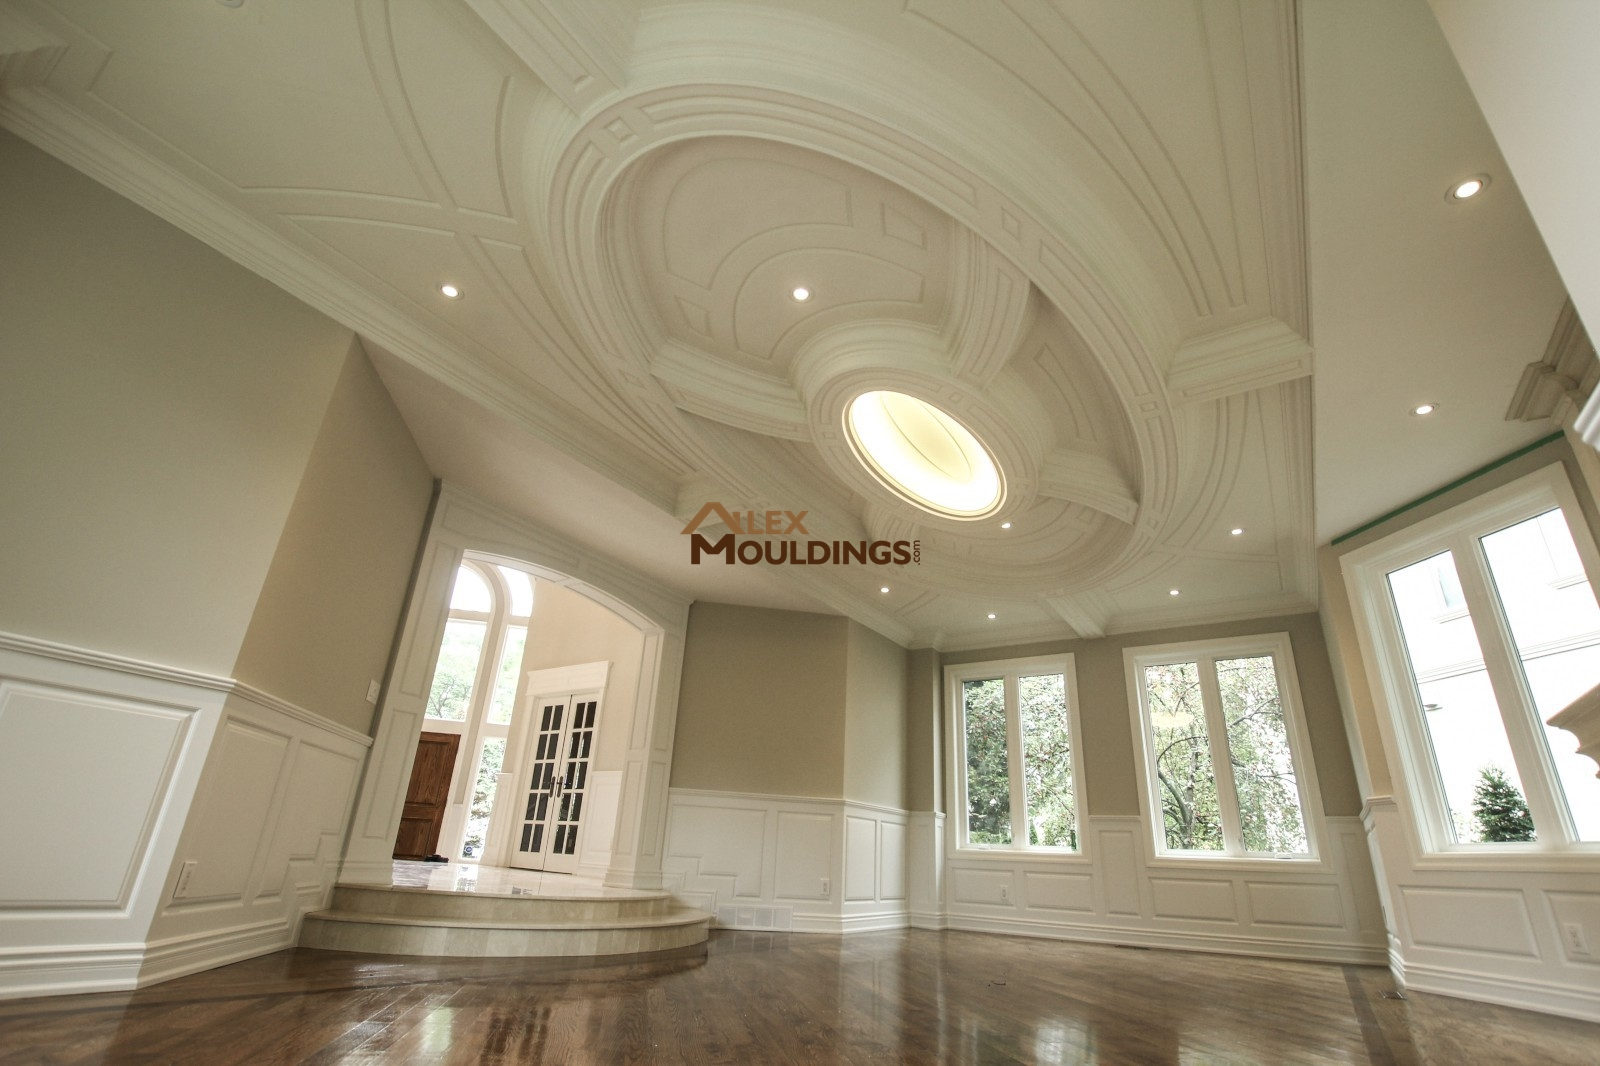 With a simple trim line running the place of the ceiling and contrasting colors one can easily create the coffered tray ceiling effect